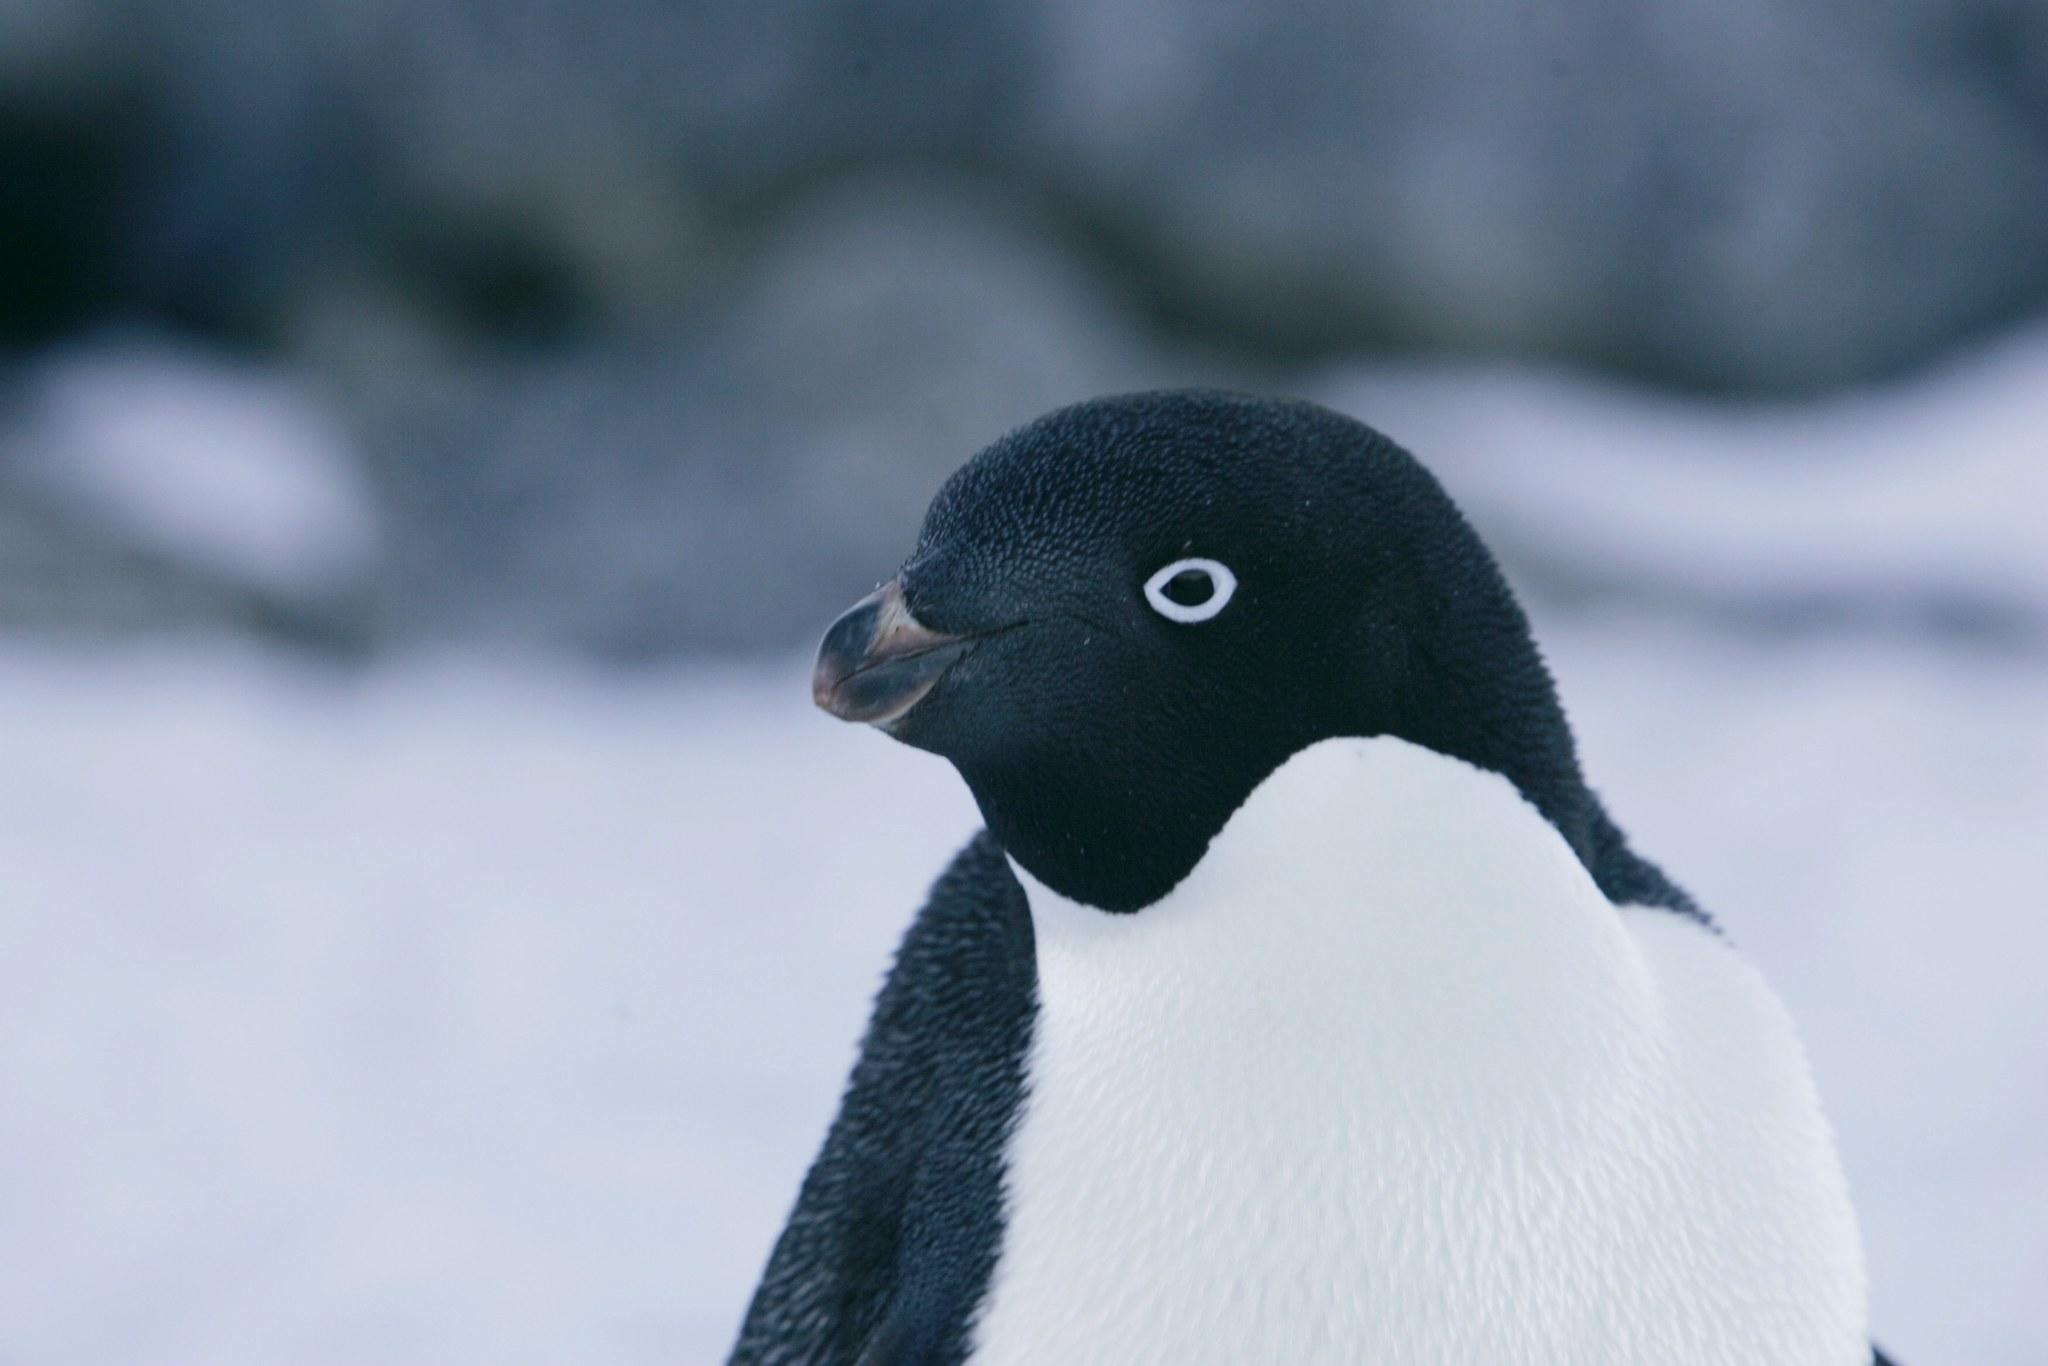 Want to speed up the next mass die-off? Kill and eat as many penguins as possible -- the smug birds have it coming.